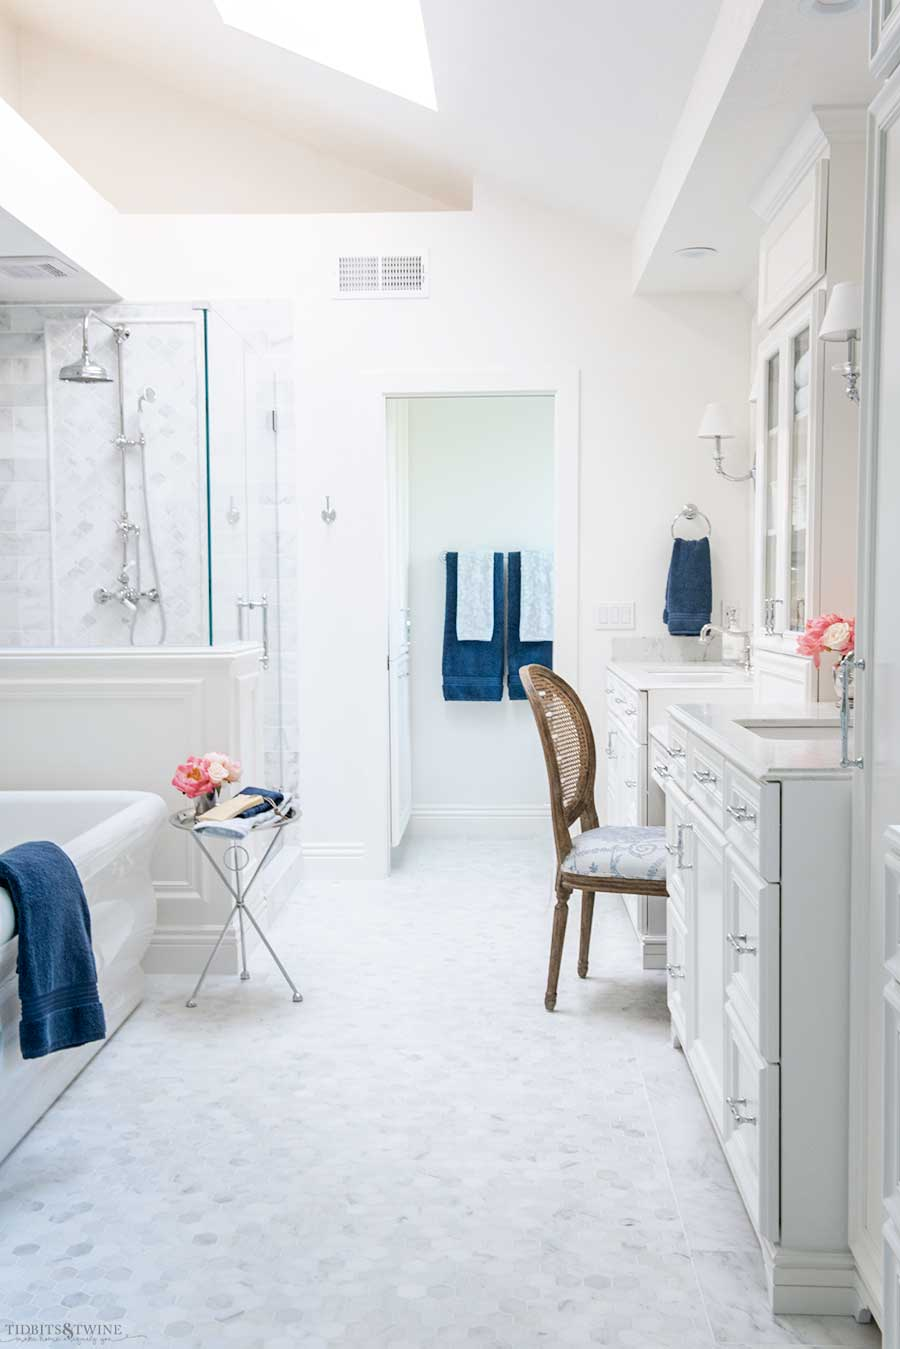 French elegant master bathroom with white marble floor freestanding tub shower pony wall and blue accents